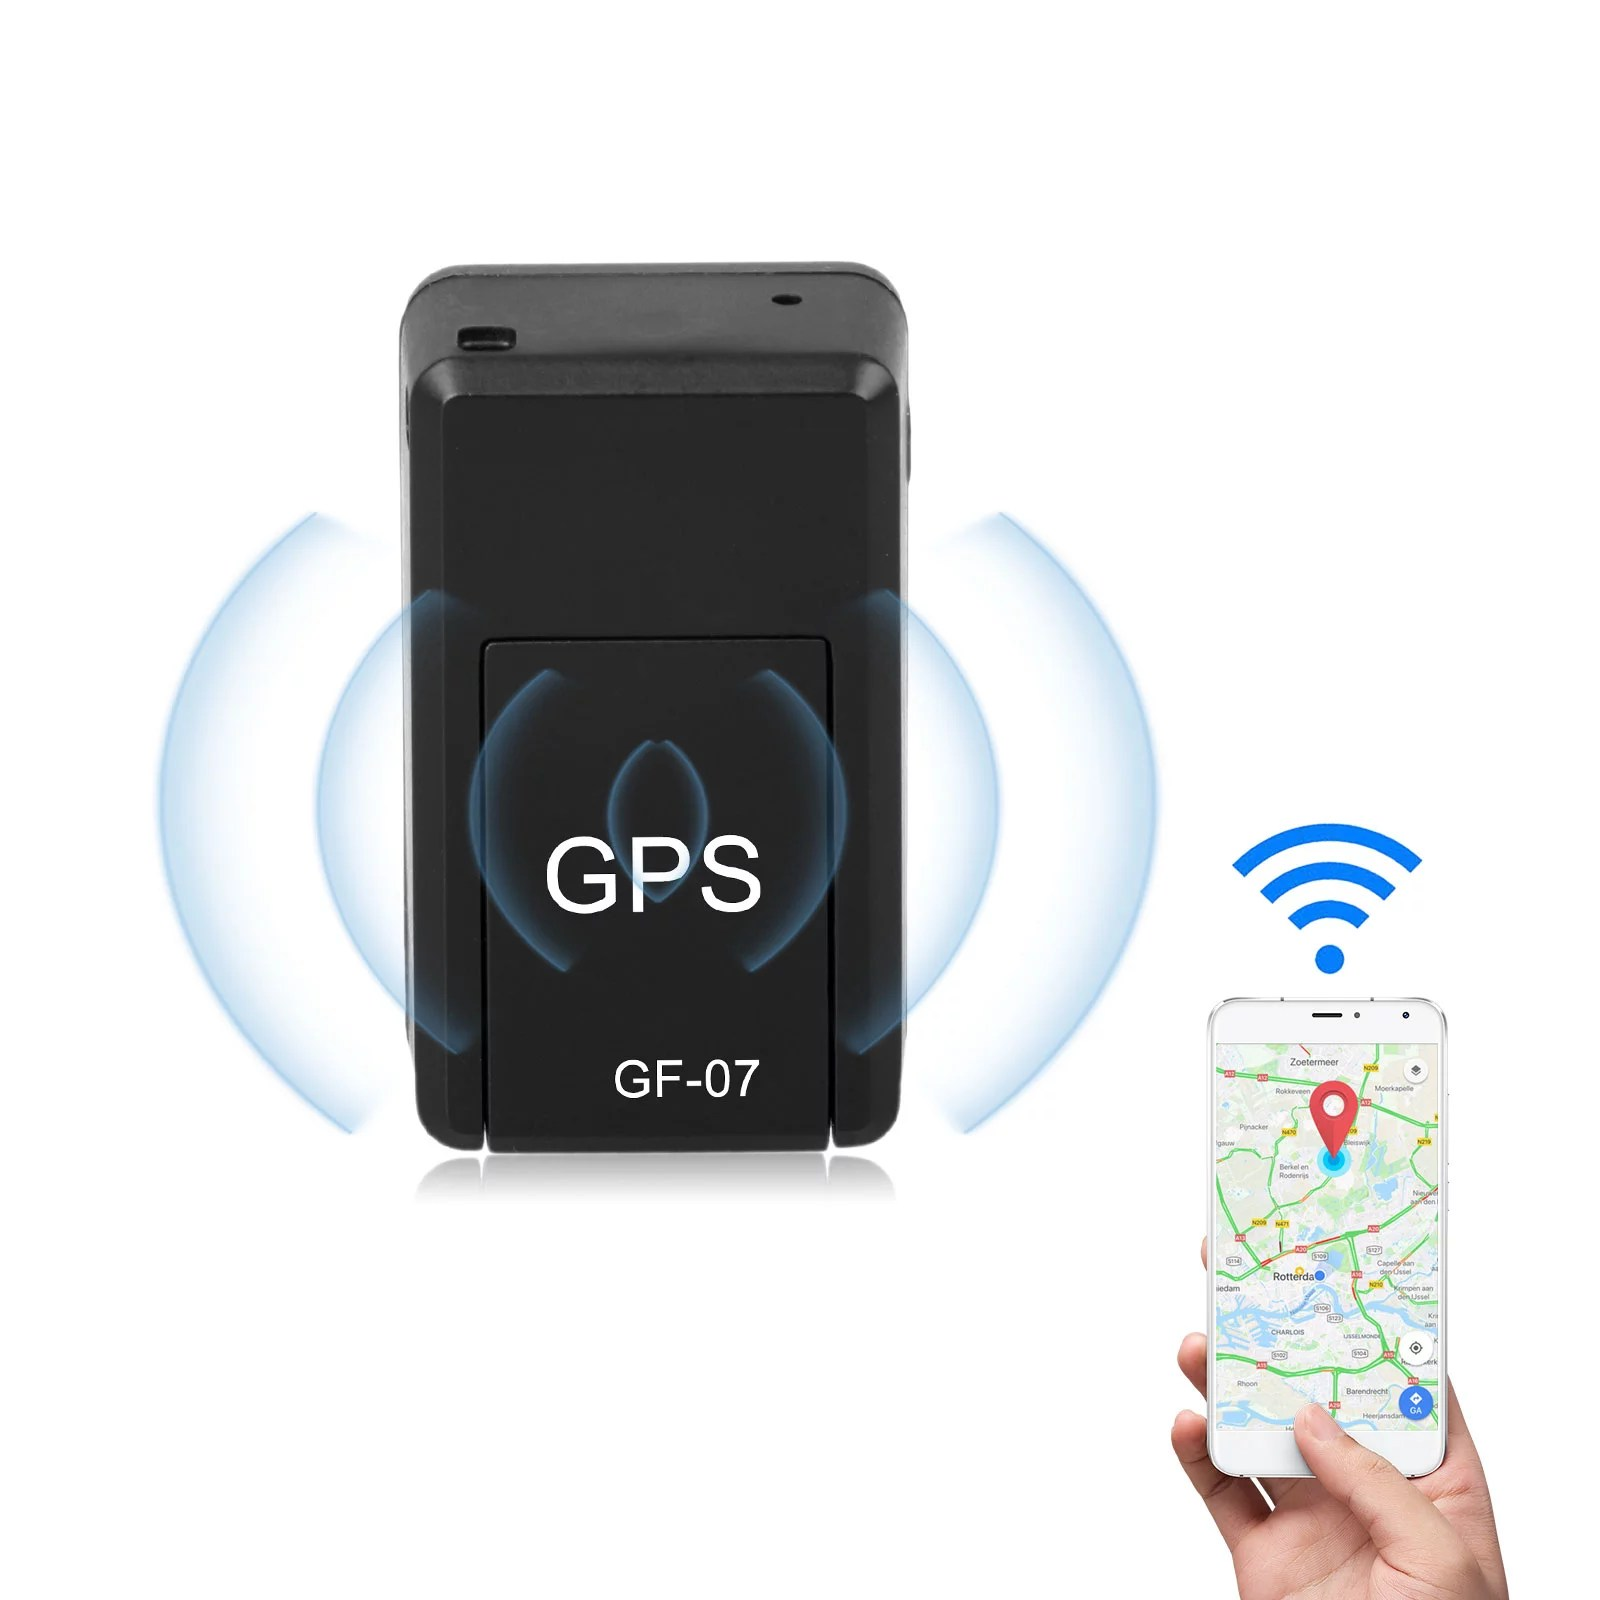 Gps Tracker Tracking Device Mini Car Gps Tracker Real Time Tracking Locator Free Installation For Vehicles No Monthly Fee Dogs Keys Cars Kids Persons Travel Key